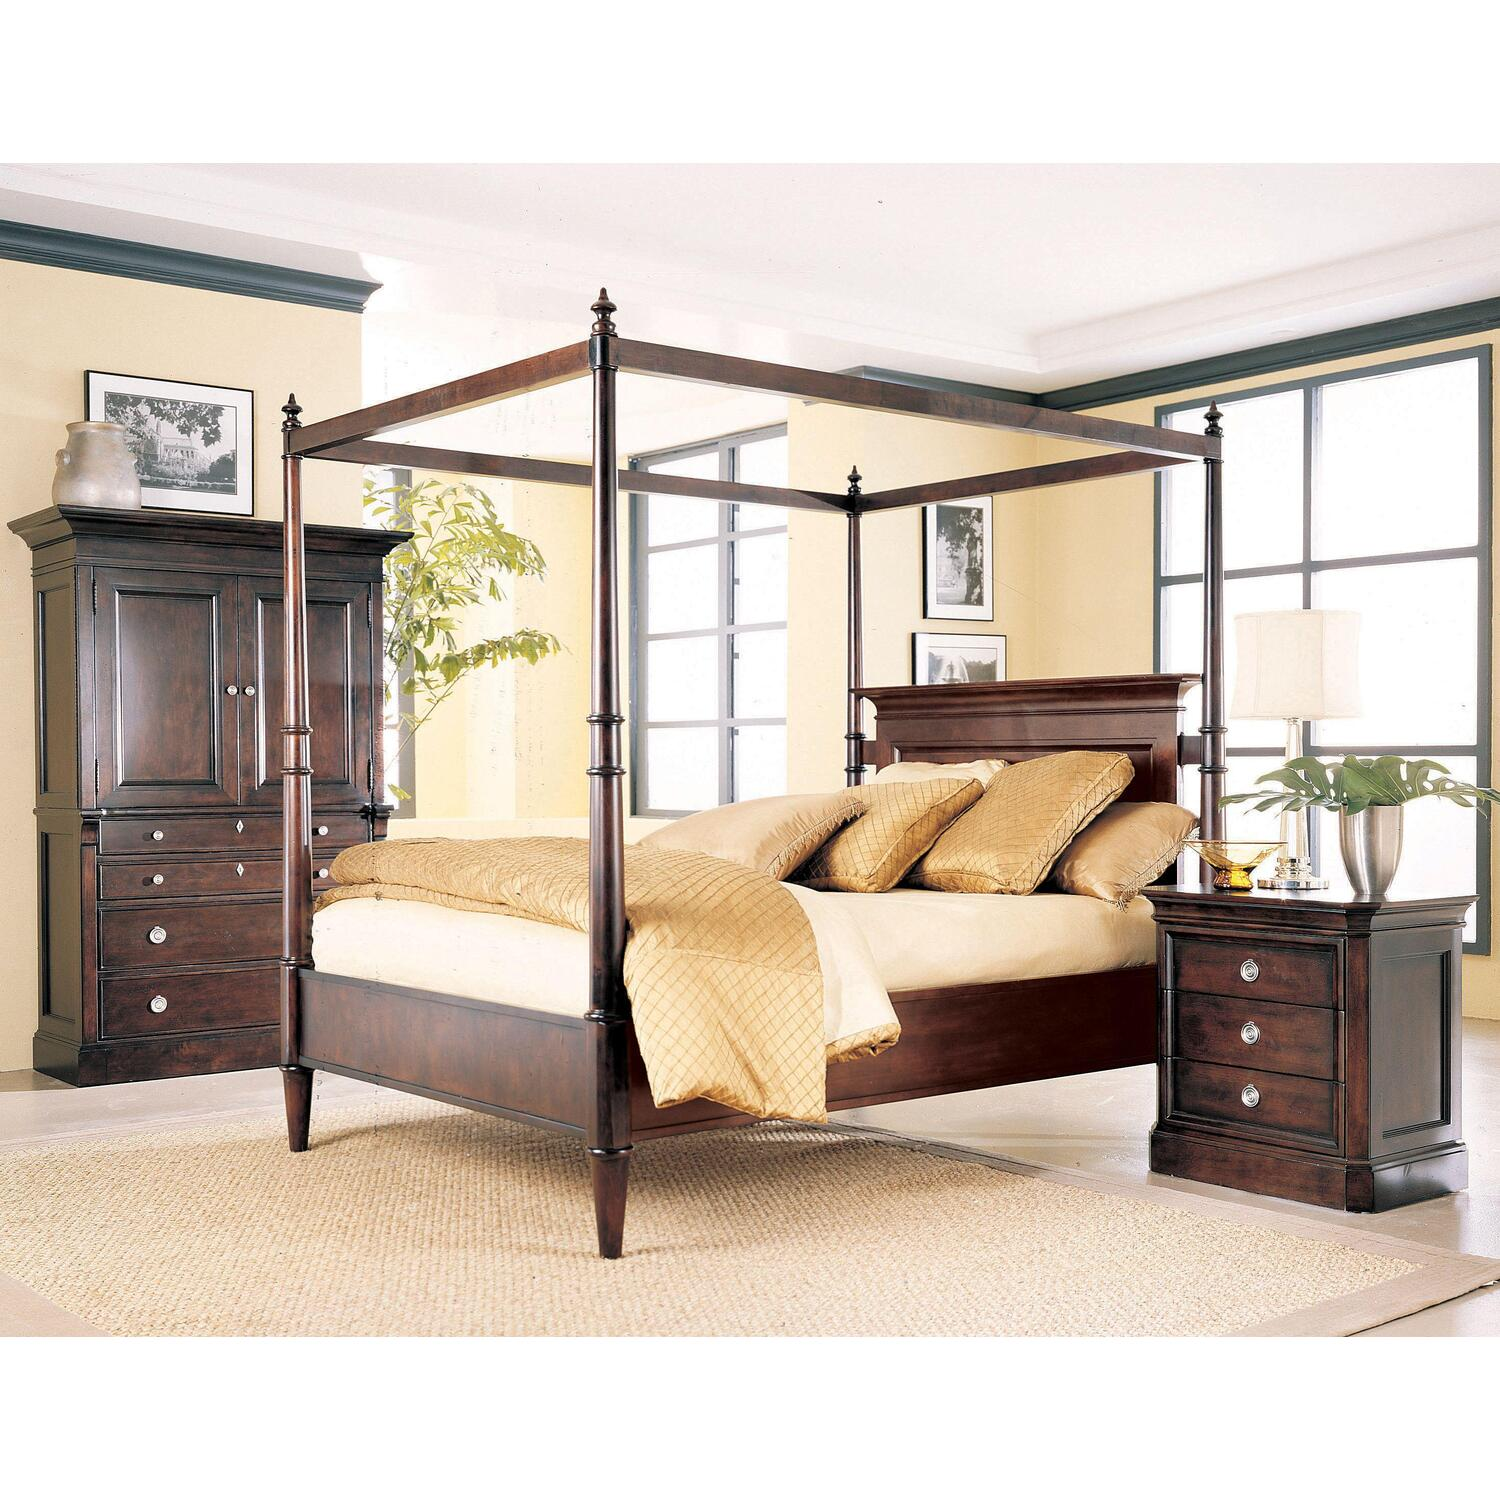 Lane queen poster bed set with dresser mirror nightstand for Lane bedroom furniture